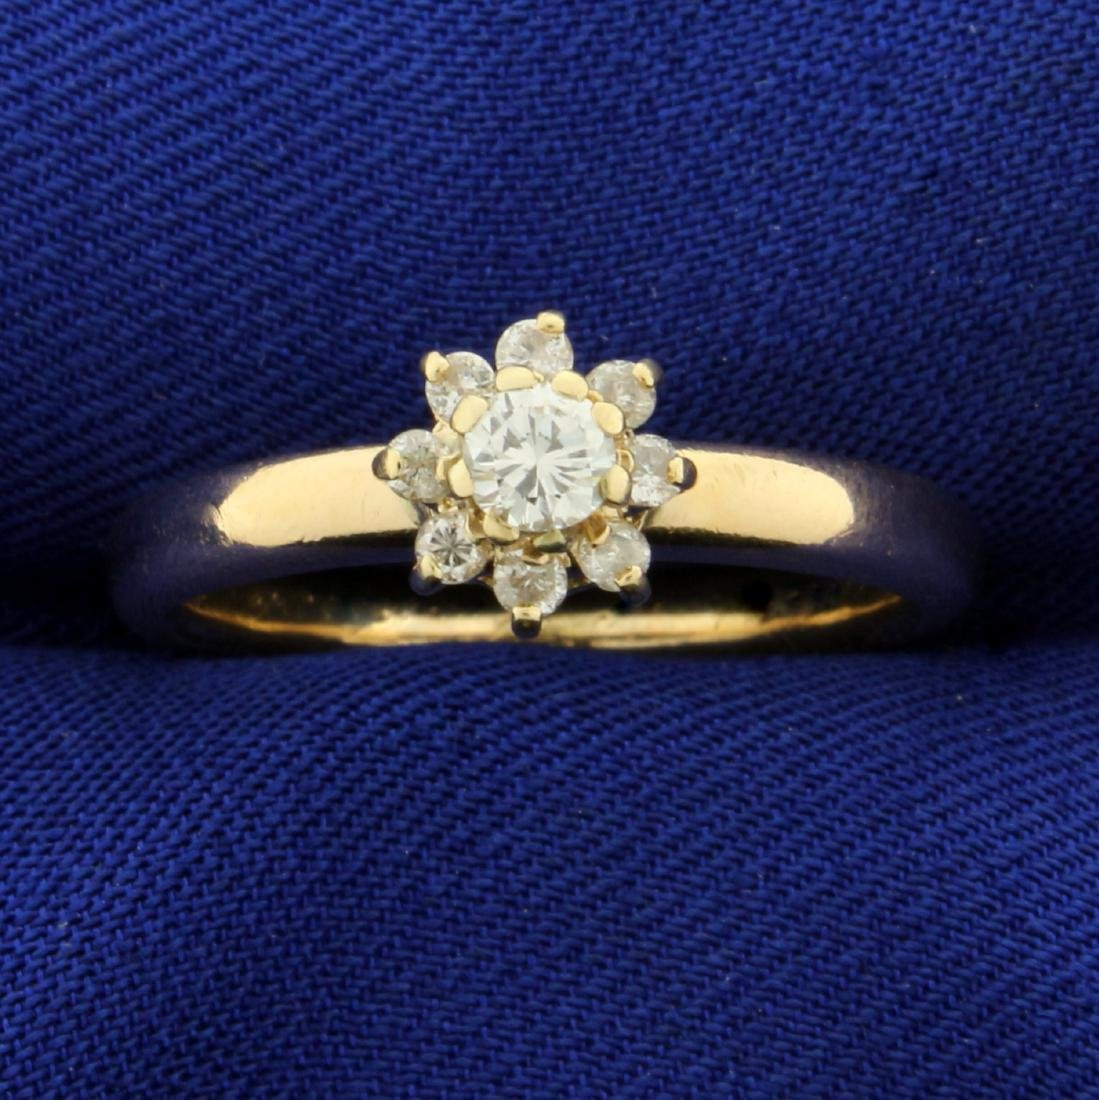 1/3ct TW Diamond Flower Ring in 14K Yellow Gold